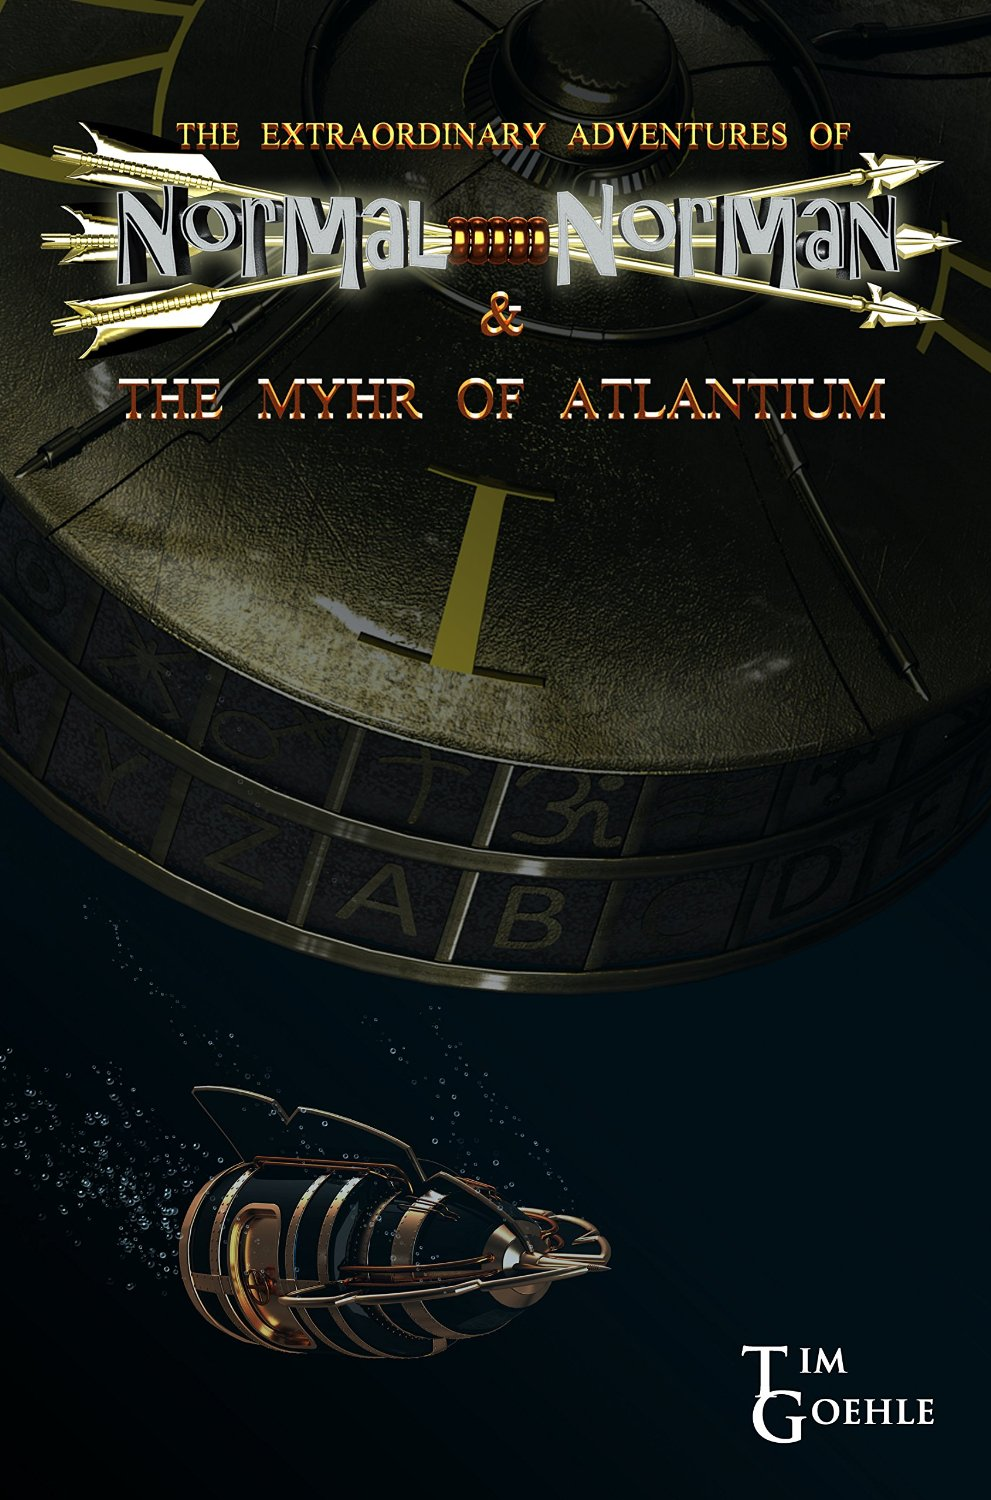 The Extraordinary Adventures of Normal Norman & The Myhr of Atlantium by Tim Goehle